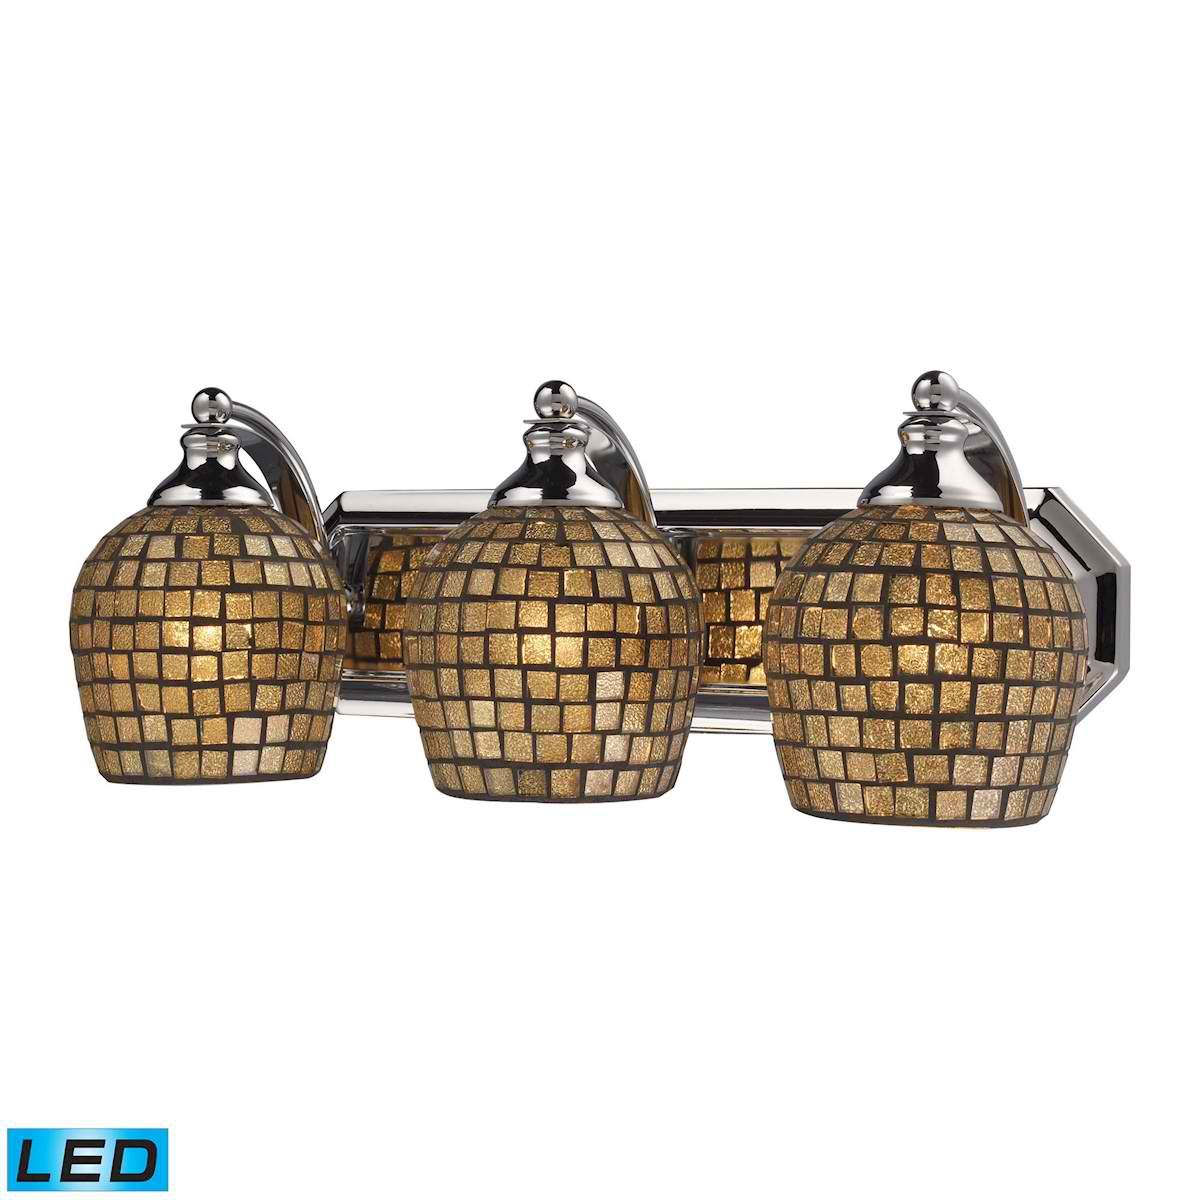 3 Light Vanity in Polished Chrome and Gold Mosaic Glass - LED, 800 Lumens (2400 Lumens Total) with Full Scale